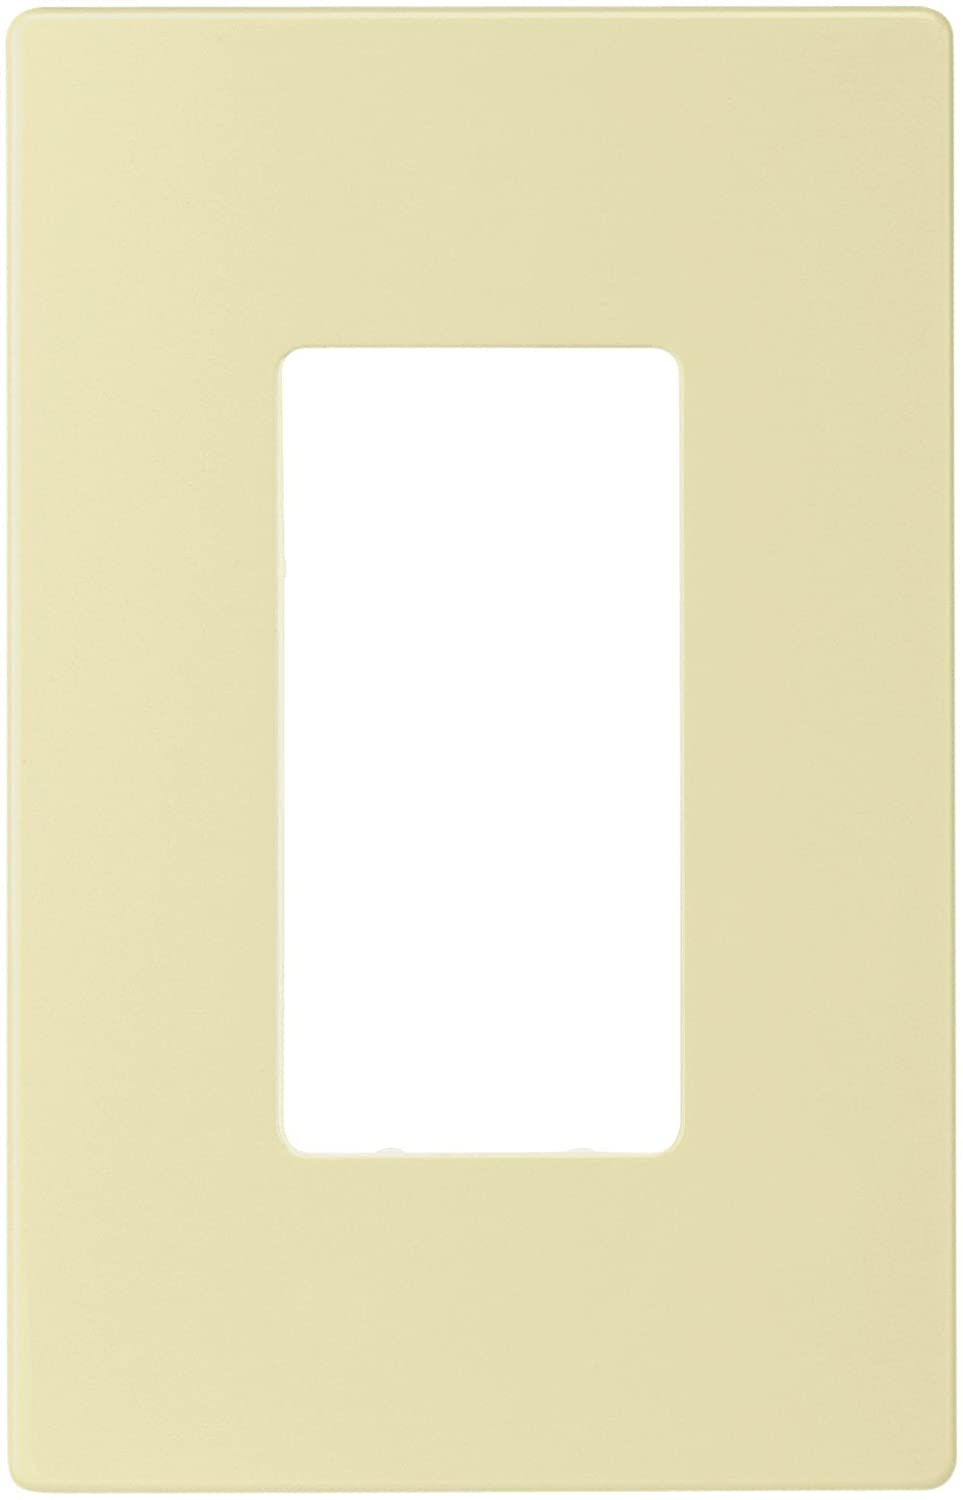 Eaton Pjs26w Decorator Screwless Wallplate 1 Gang White Cooper Wiring Wall Plates Devices